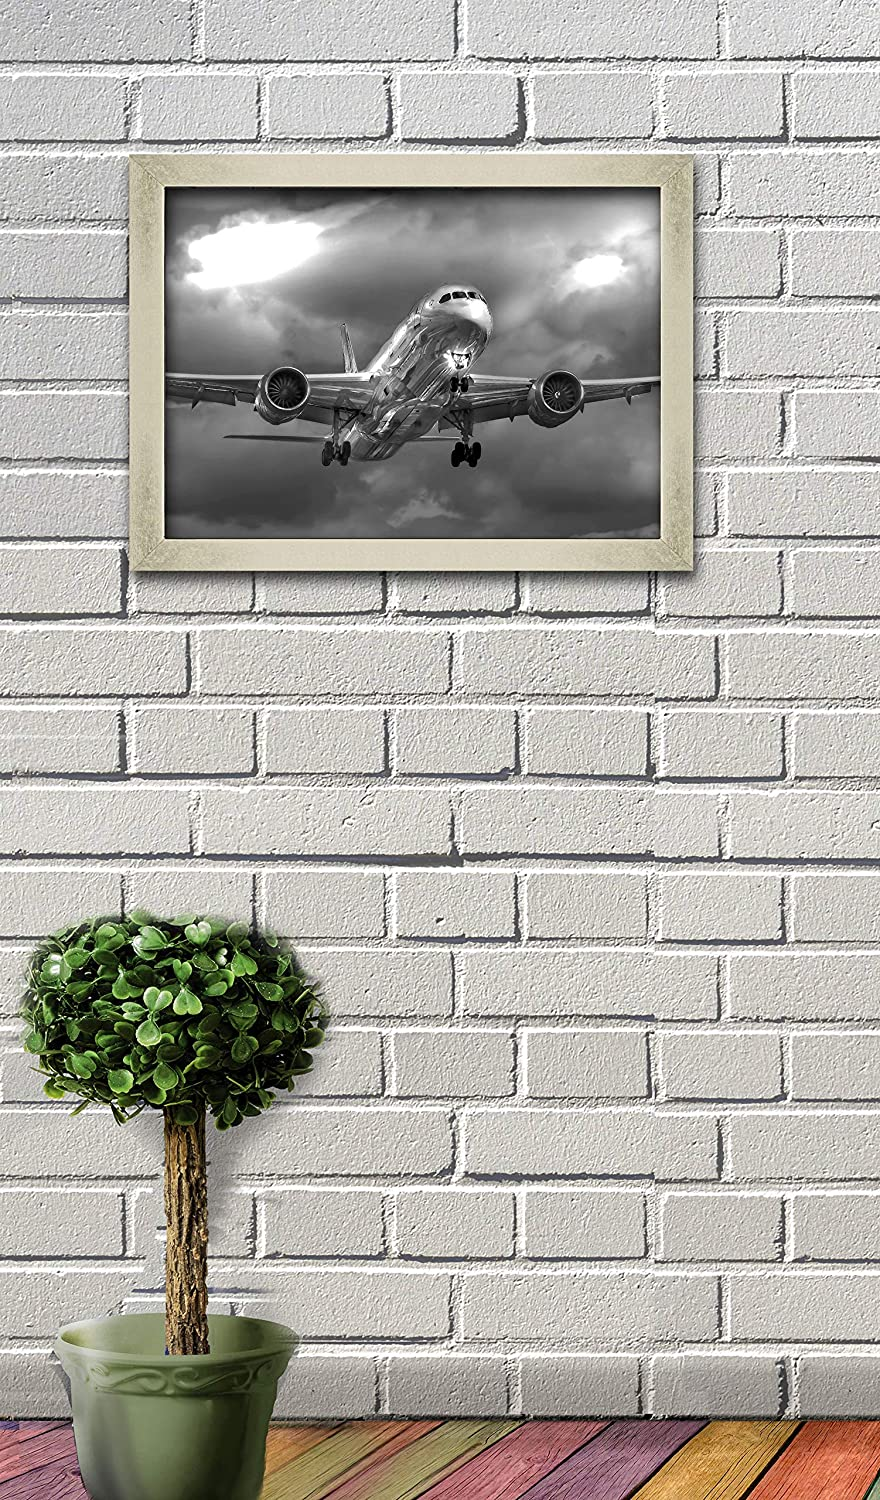 Home Art Wall Decor Dreamliner Boeing-787 Oil Painting Picture Printed On Canvas